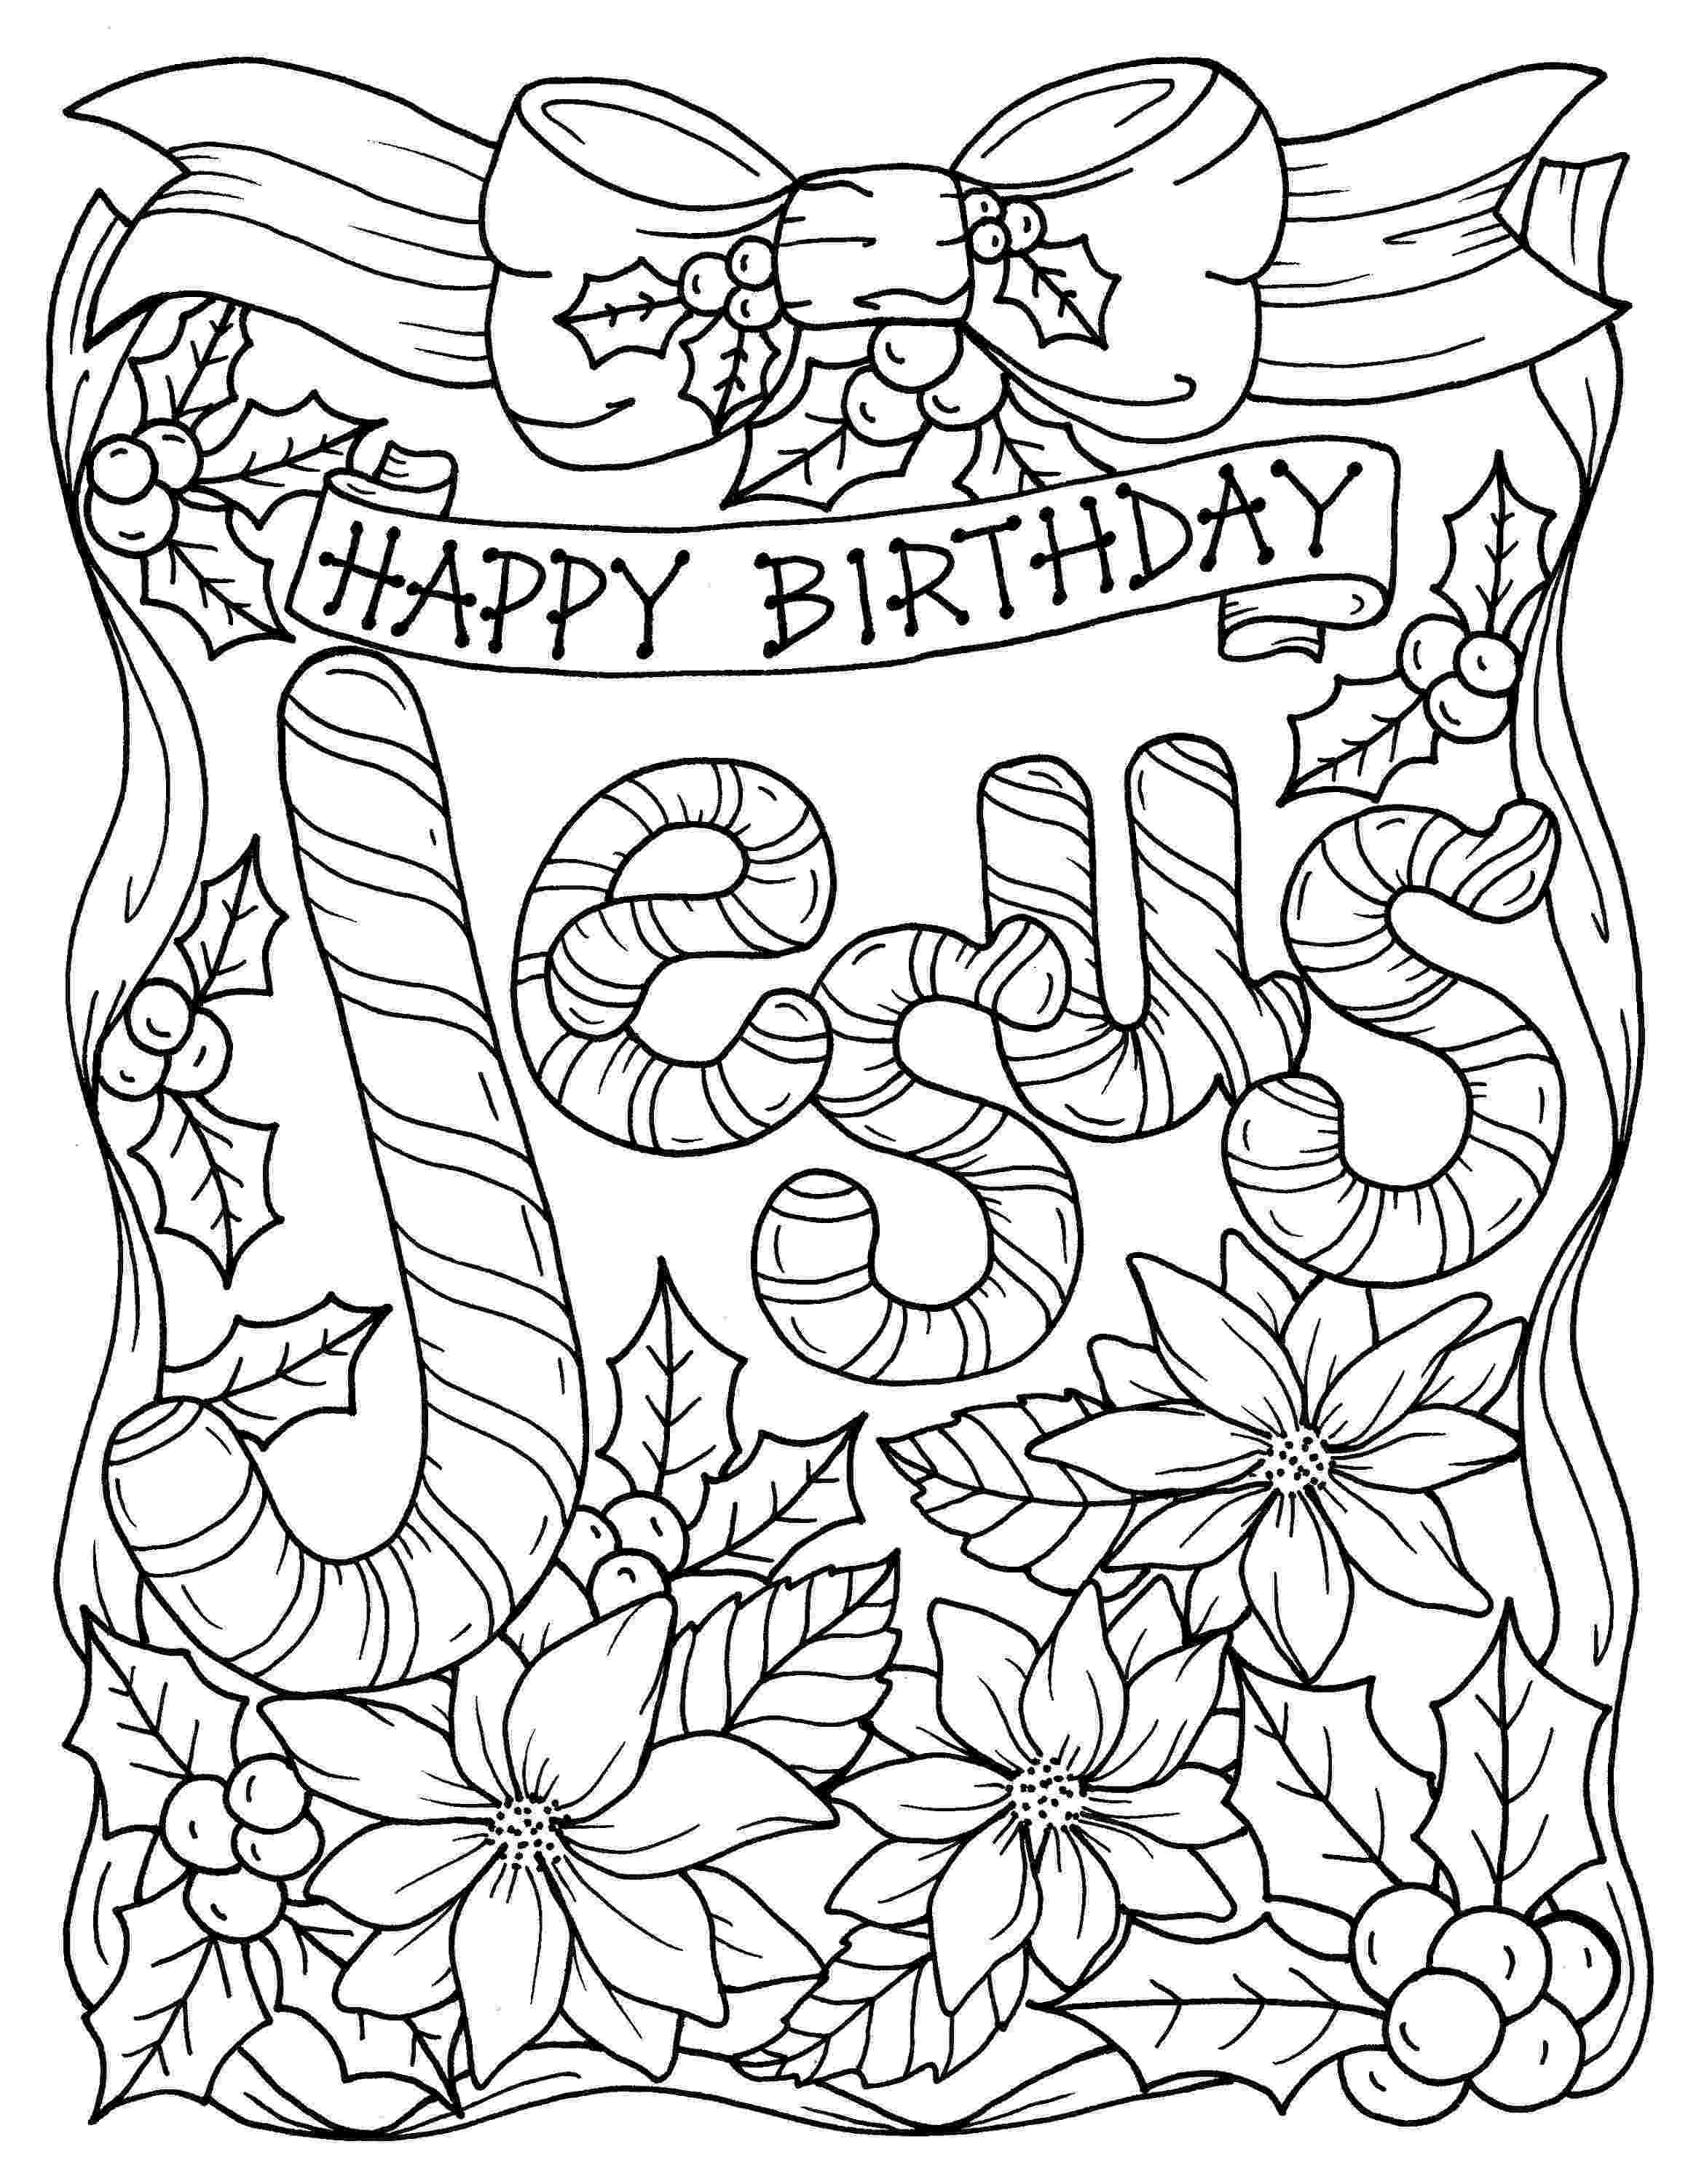 christmas coloring religious free printables and coloring pages for advent zephyr hill christmas religious coloring